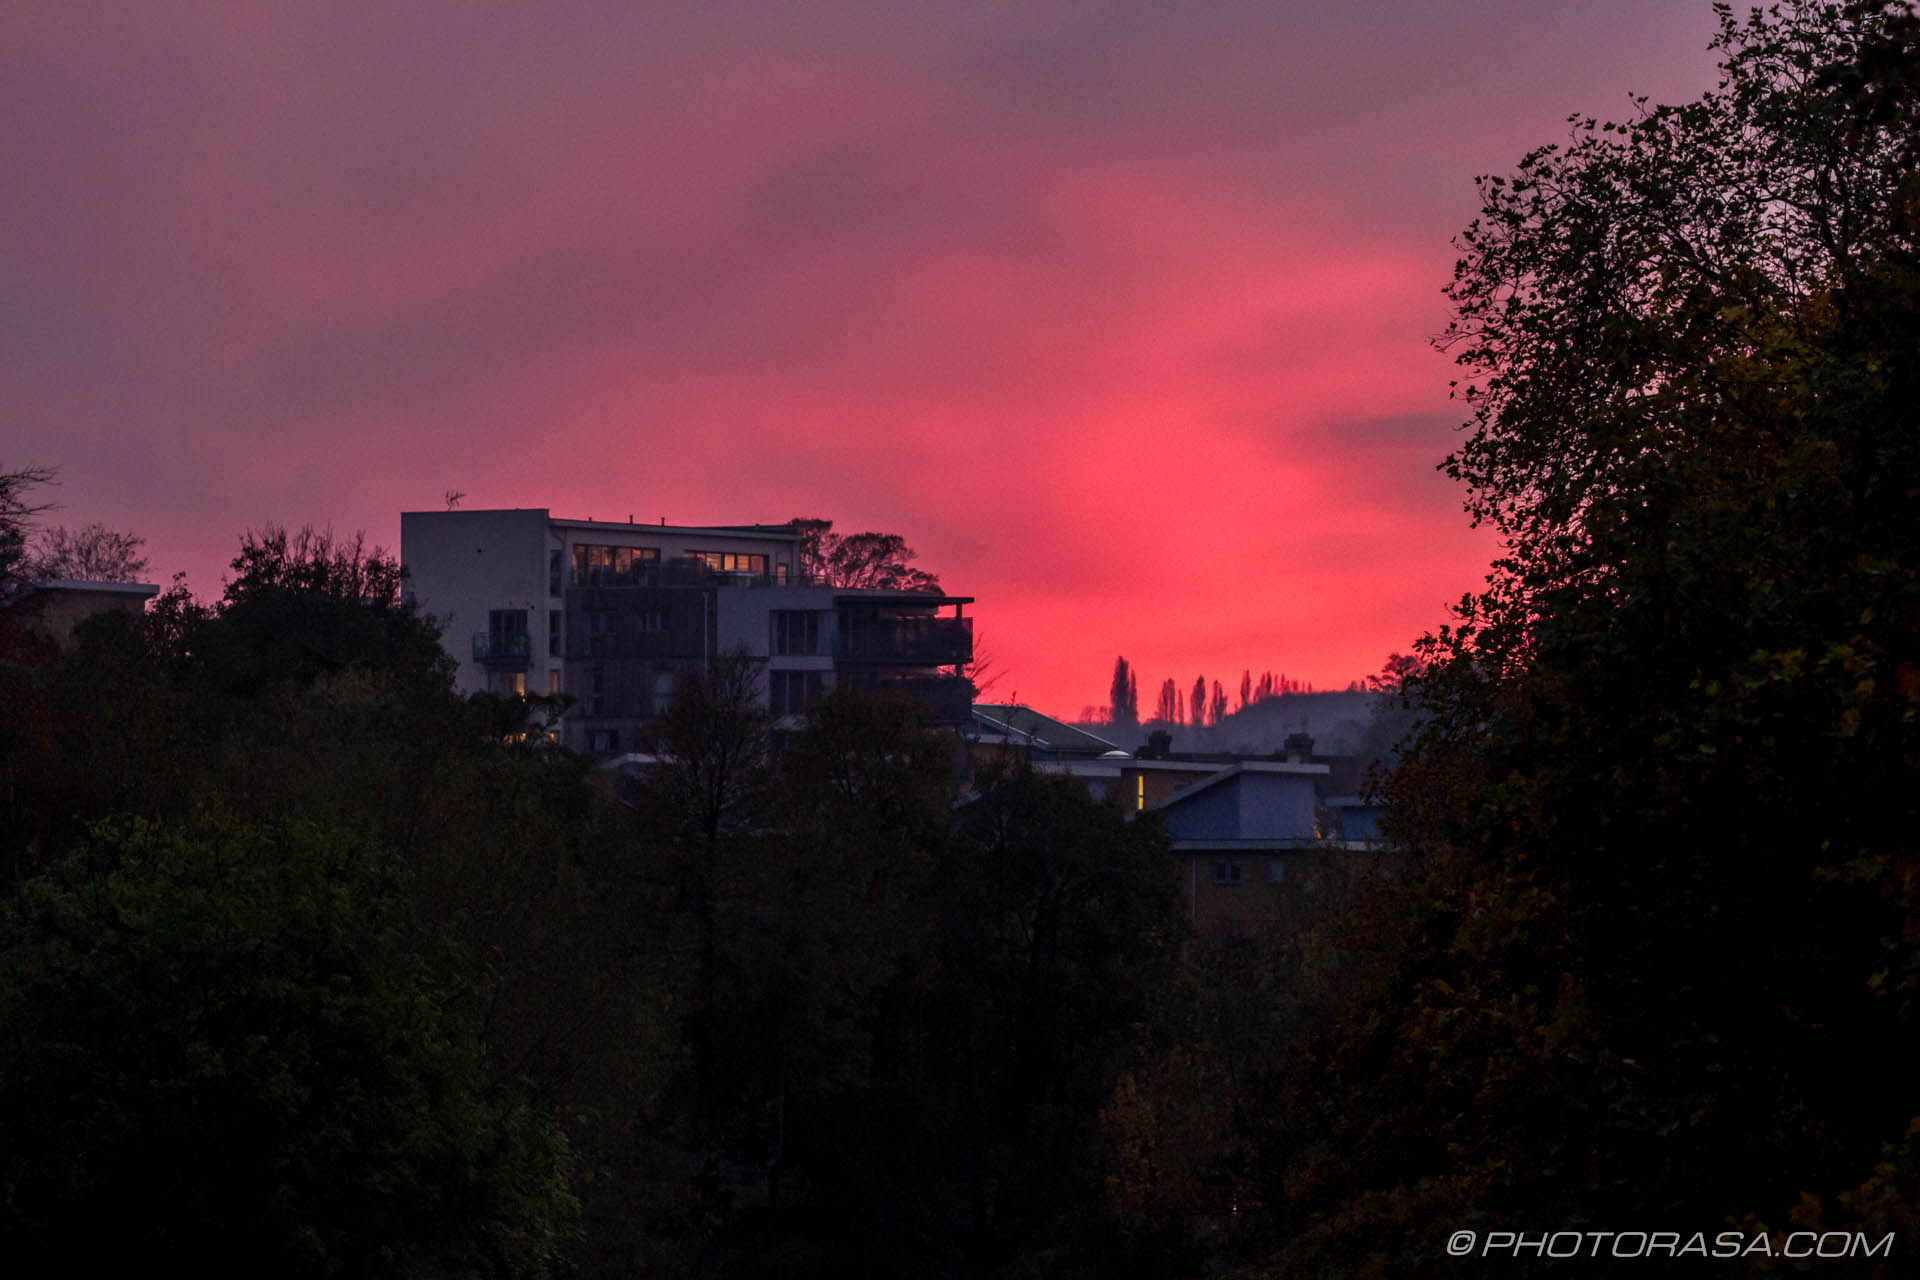 http://photorasa.com/red-sky-night/red-sky-over-block-of-flats/